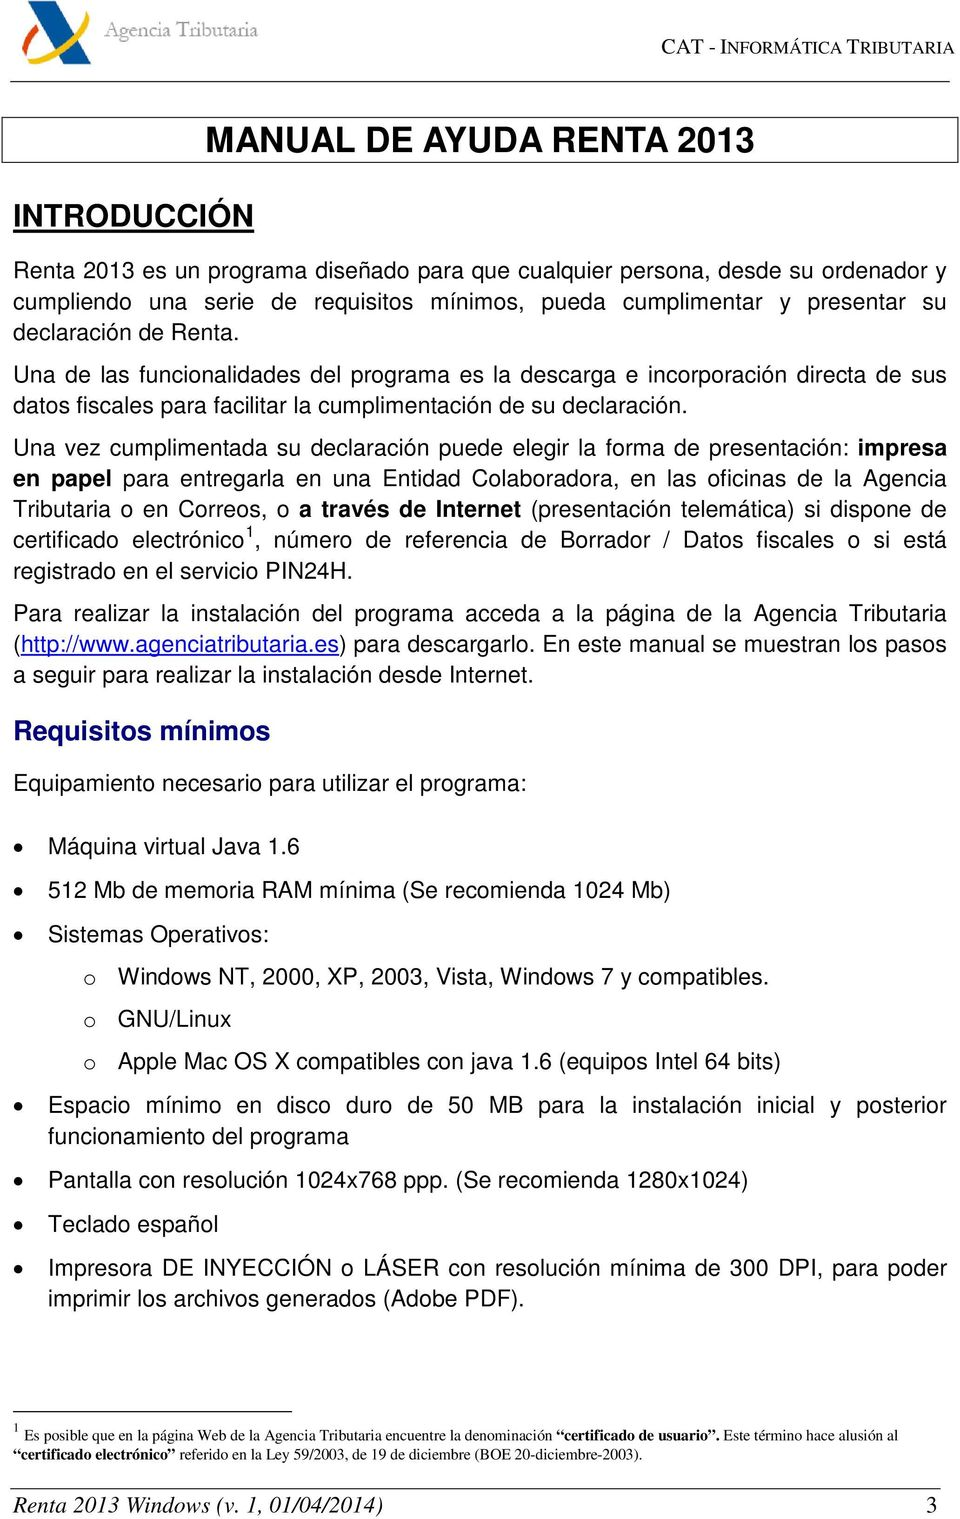 Manual de ayuda renta 2013 windows pdf - Oficinas de la agencia tributaria ...